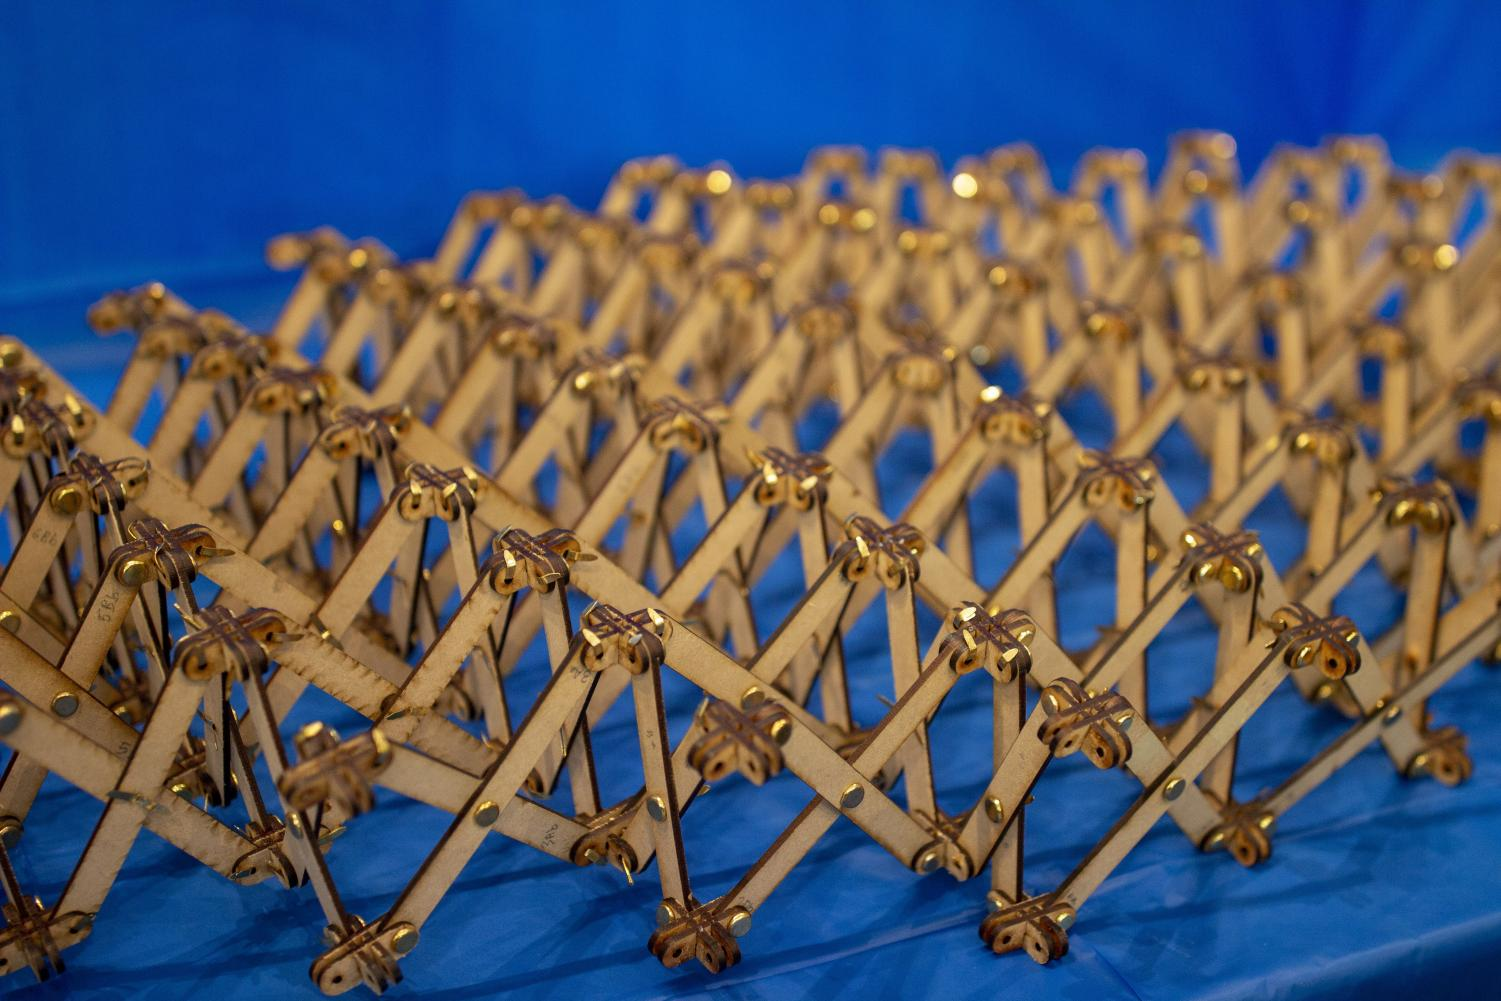 Student model from the class ARCH 536: Planning and Design of Structural Systems, taken at the Temple Buell Art Gallery, in the Architecture building on Monday.